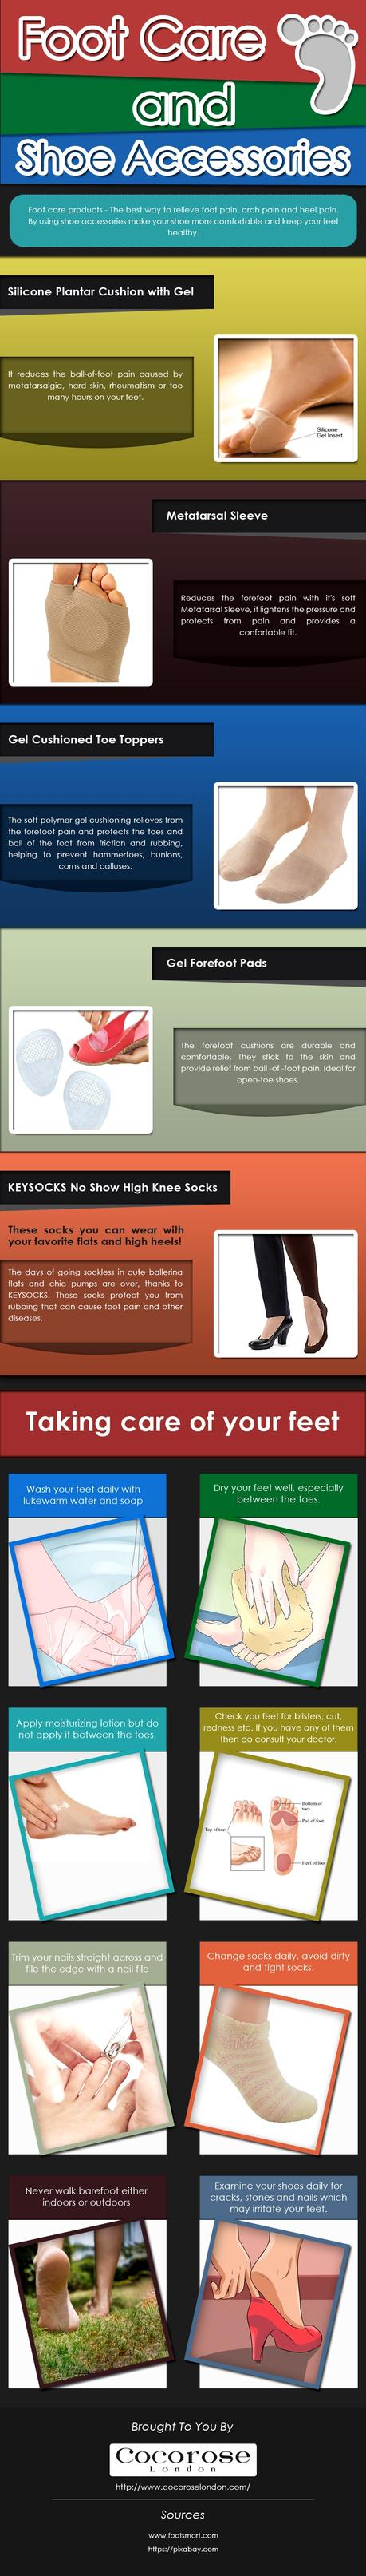 Foot Care and Shoe Accessories